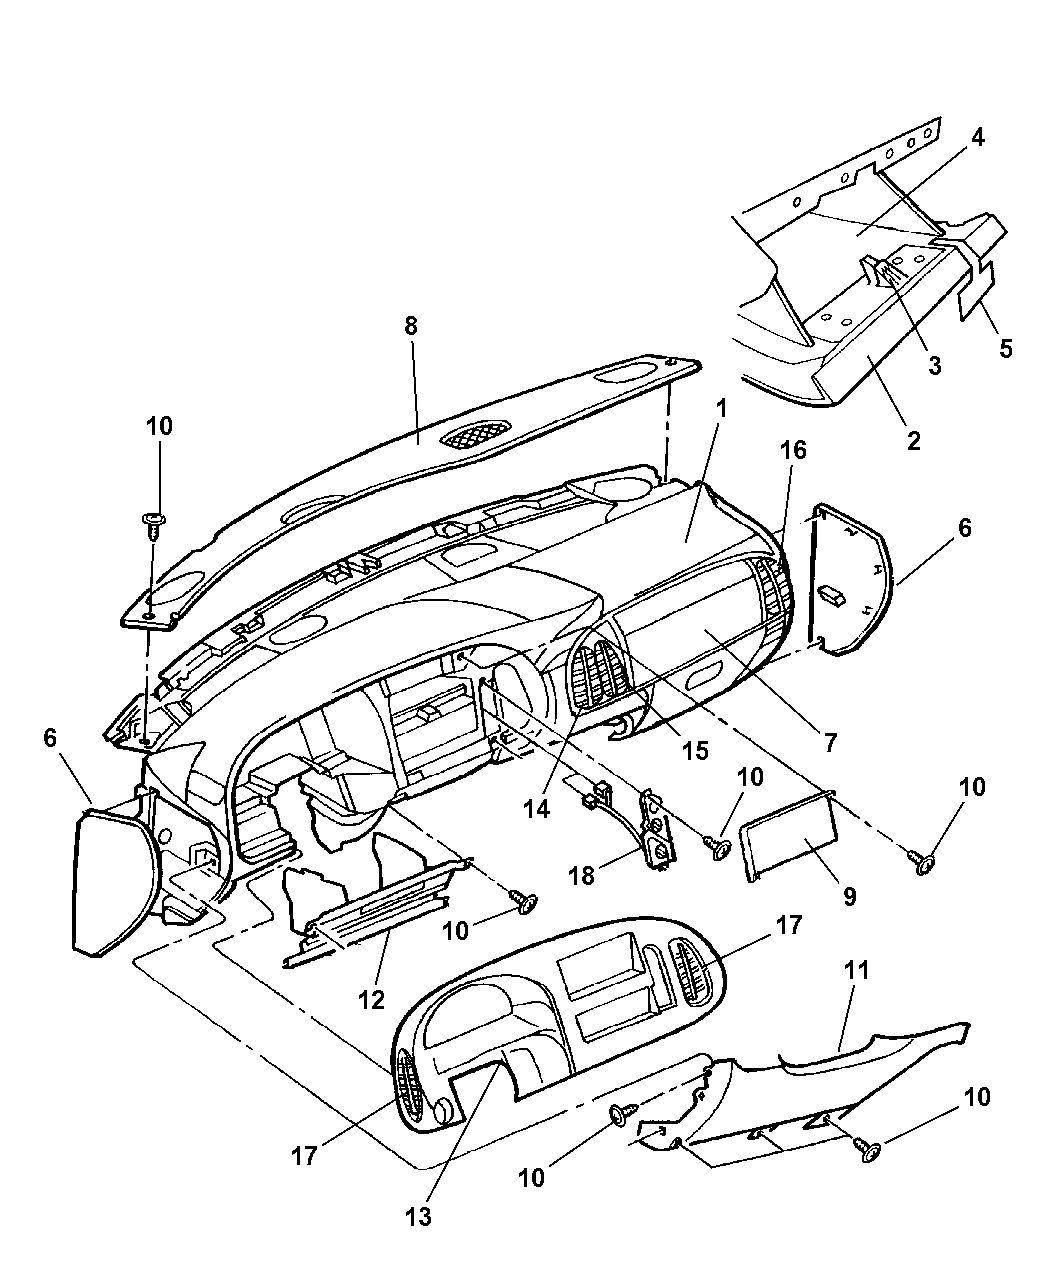 Genuine Dodge CONTROL-A/C AND HEATER